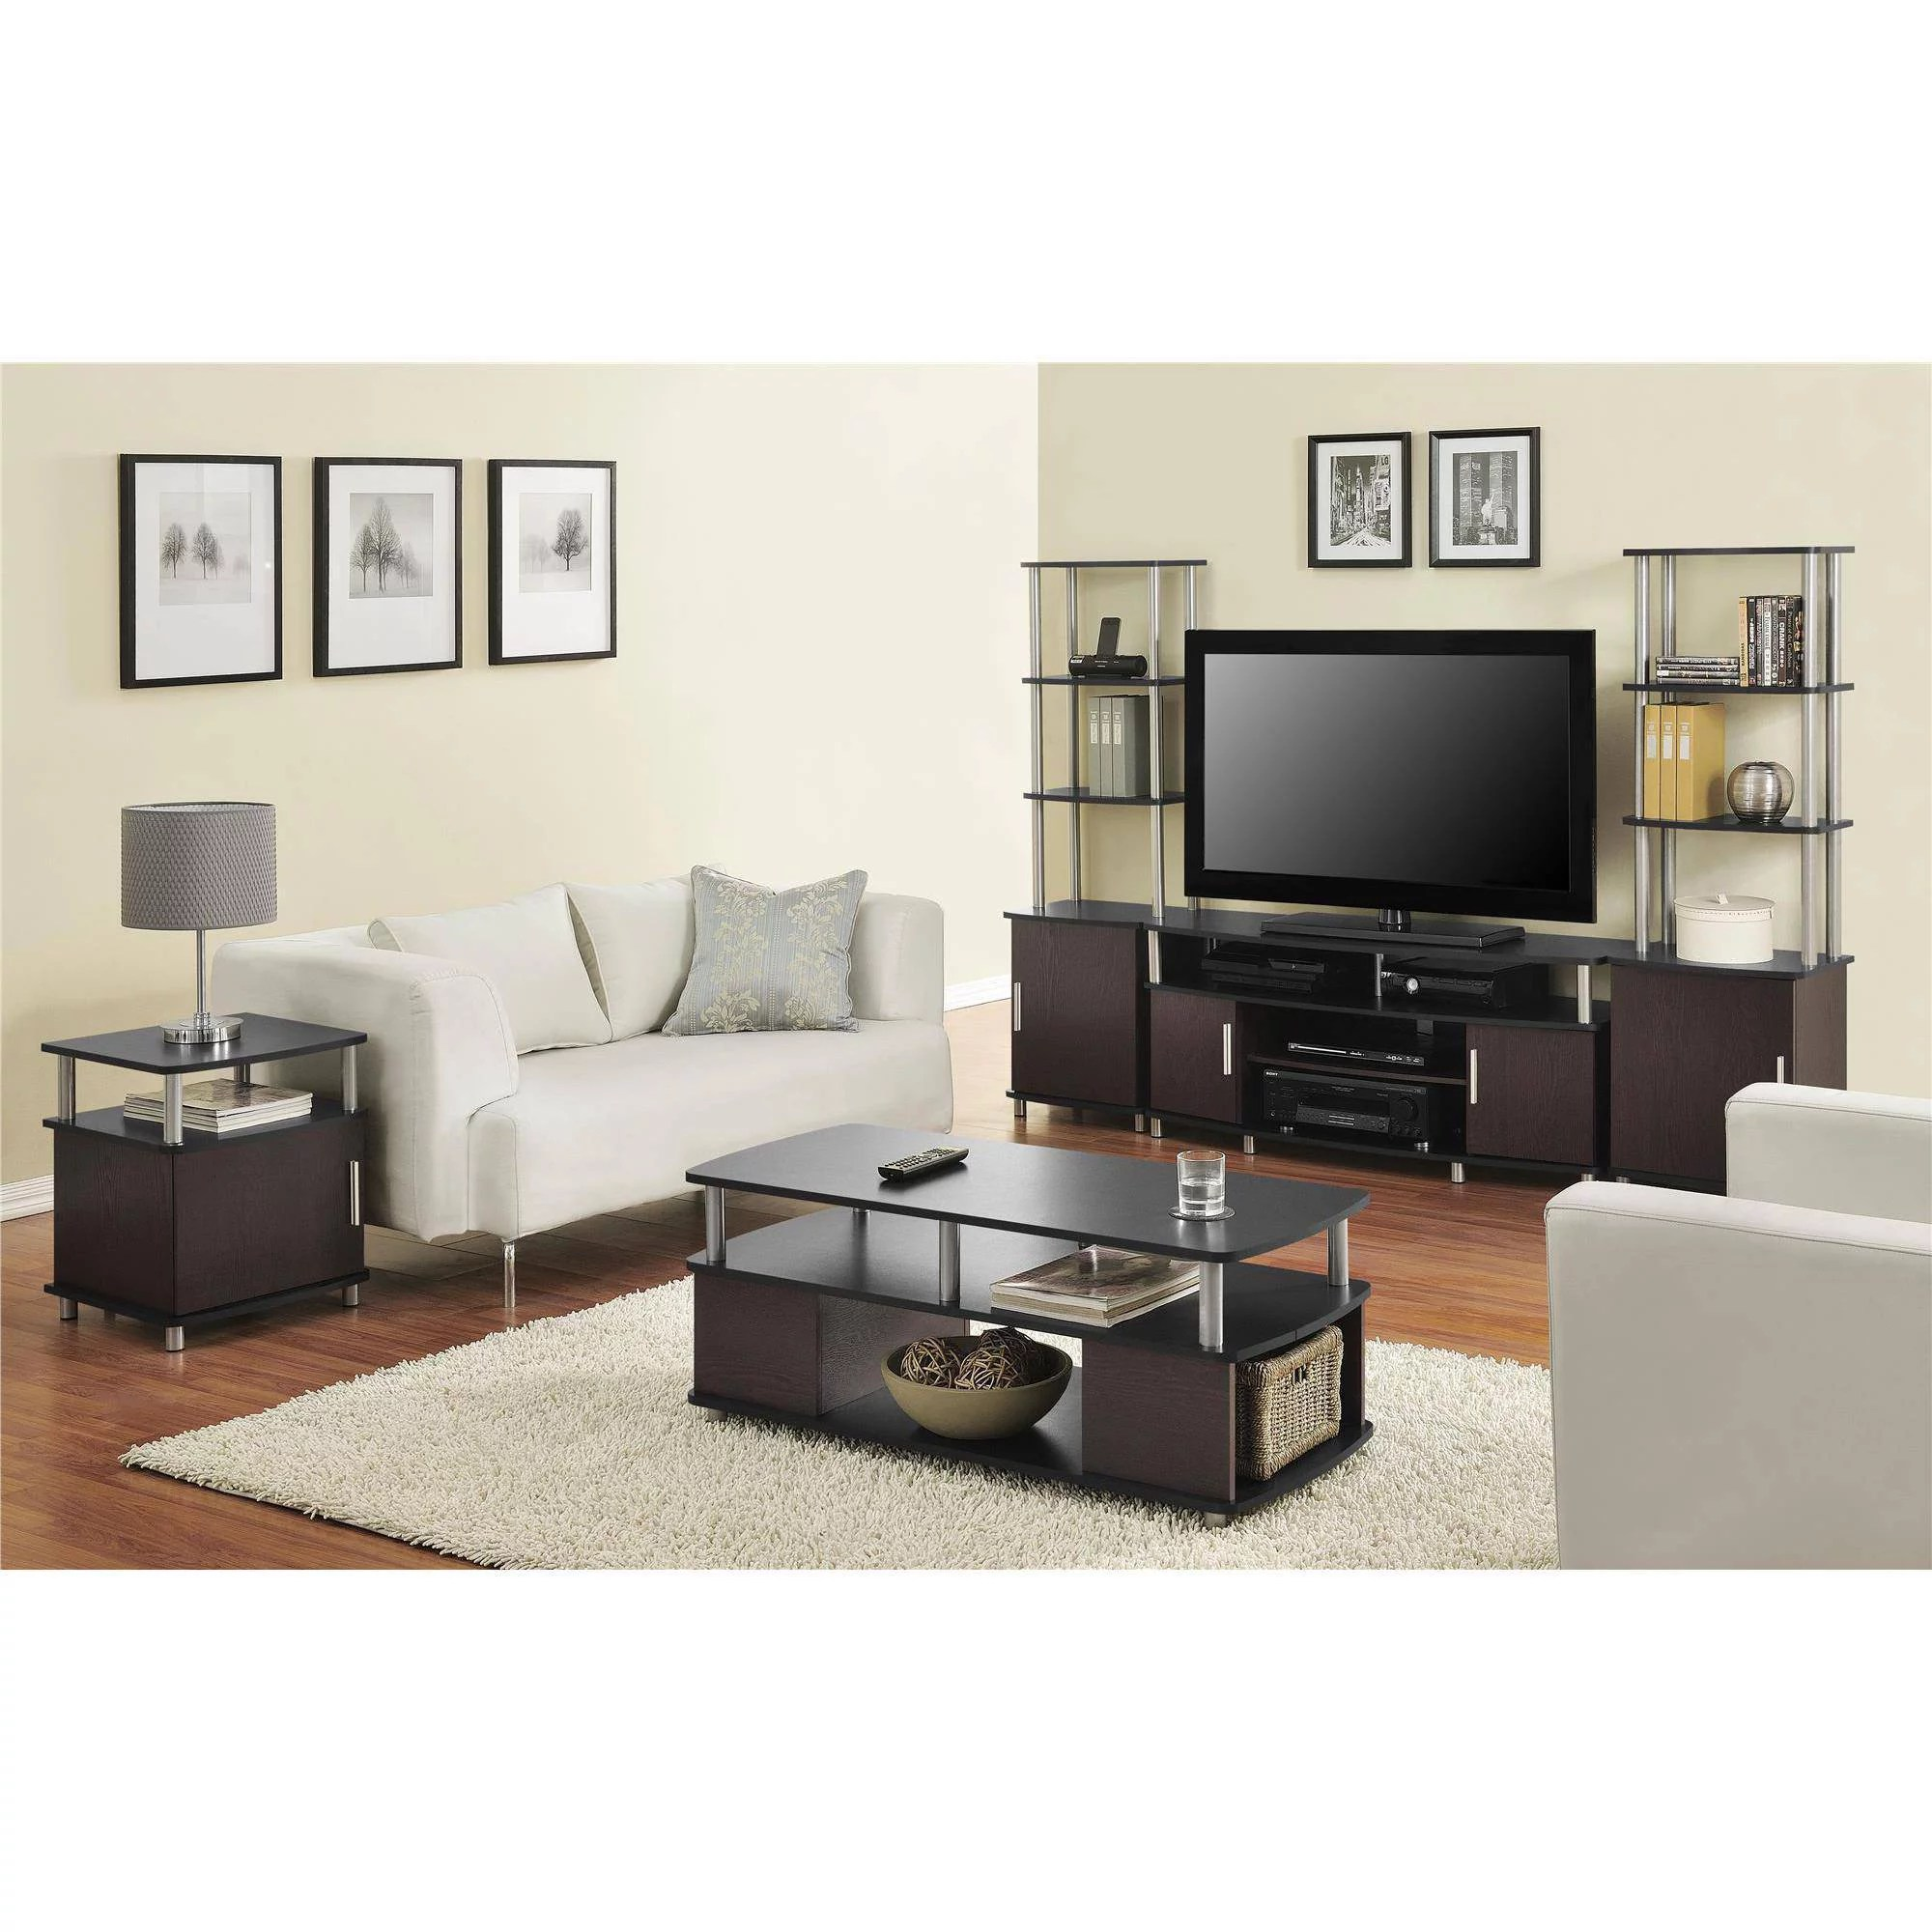 tv stands for living room grey accent wall in carson stand tvs up to 50 multiple finishes walmart com